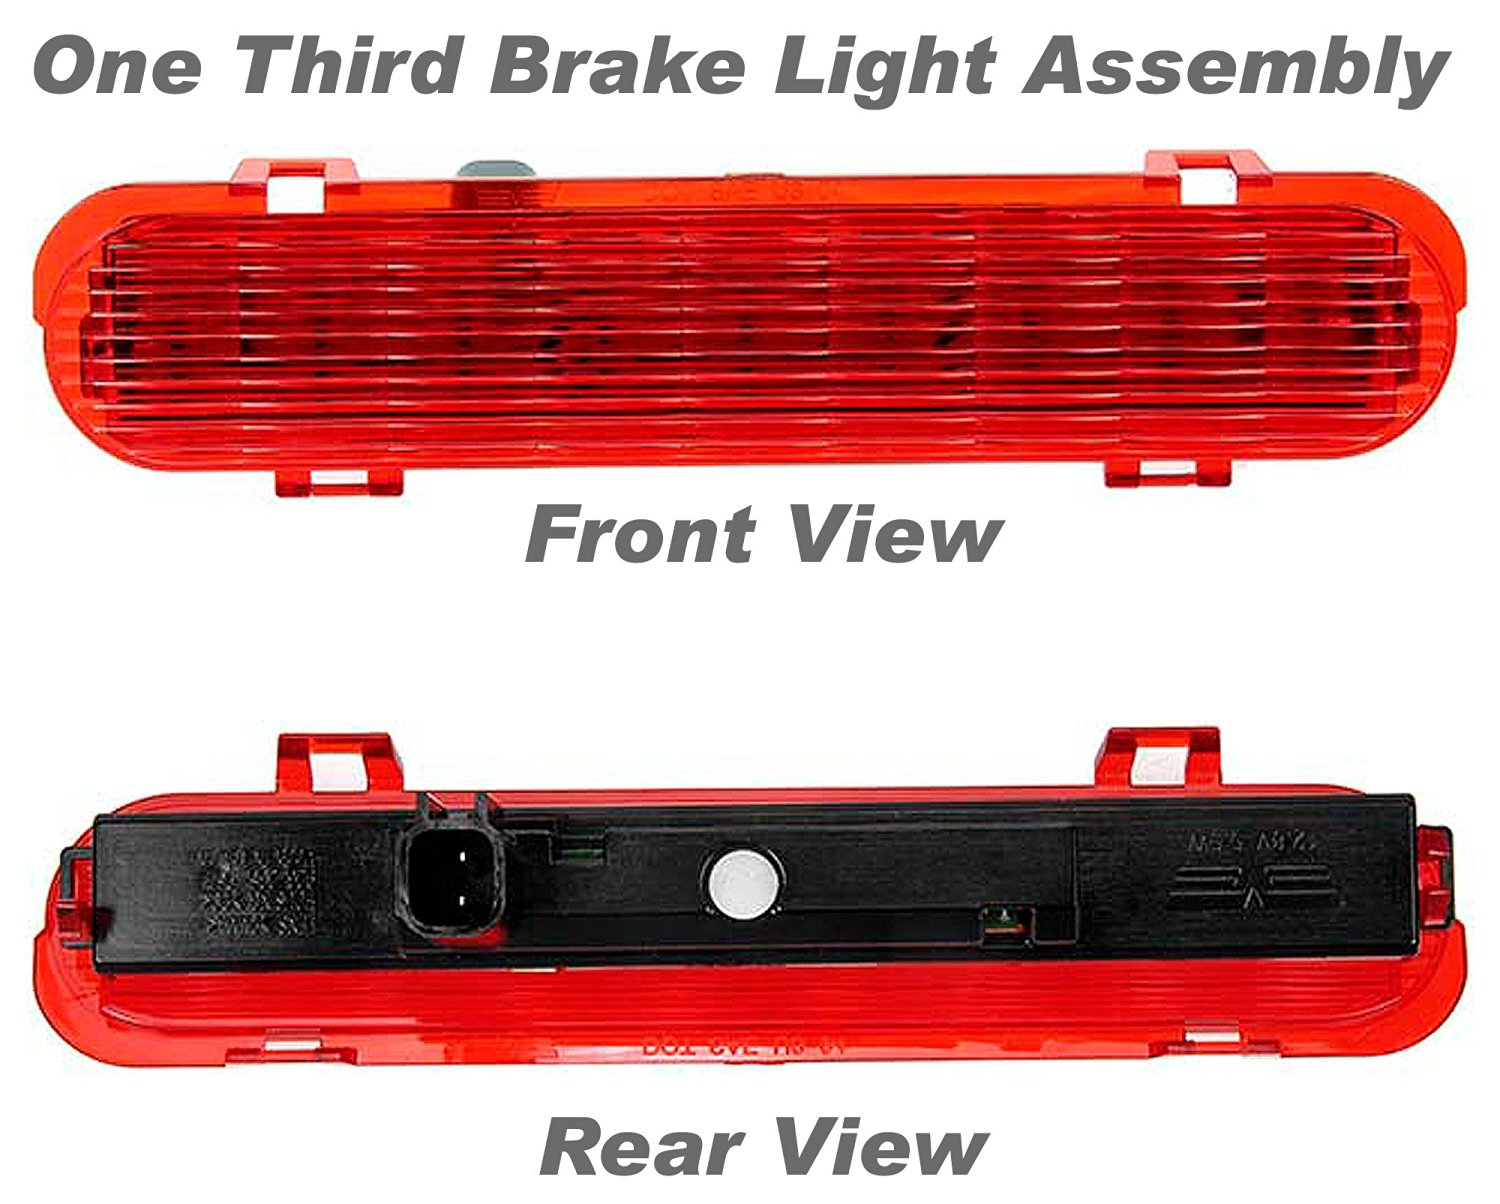 APDTY 034346 Third Brake Light/Lamp(Fits 2004-2007 Ford Freestar, and 2004-2007 Mercury Monterey)LED Bulb Technology,Direct Replacement for a Proper Fit Every Time,Replaces Factory OEM Part Number(s)- 6F2Z13A613AA, 6F2Z-13A613-AA